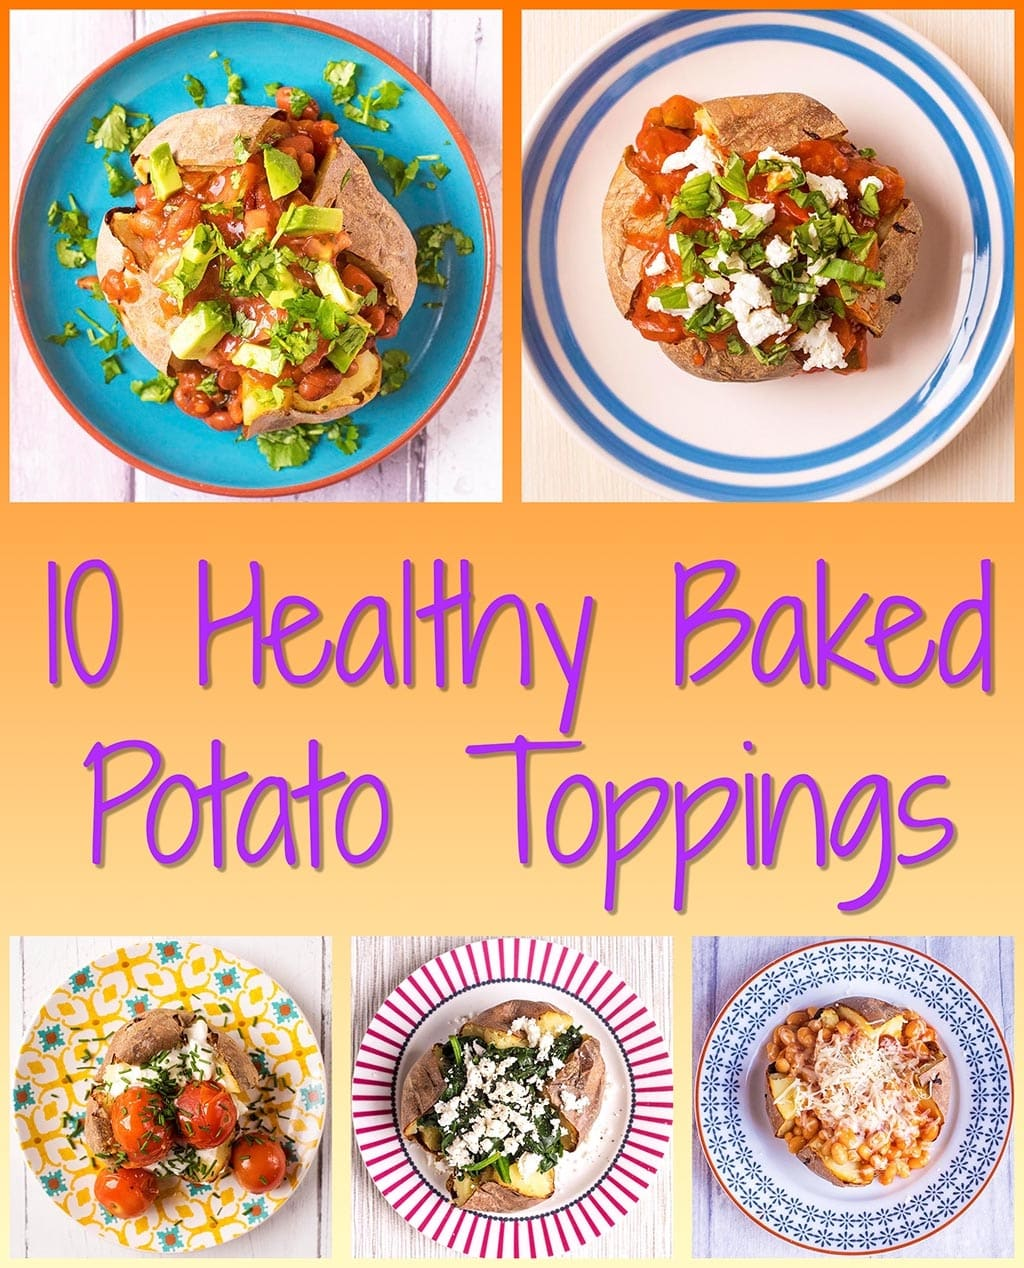 10 Healthy Baked Potato Toppings